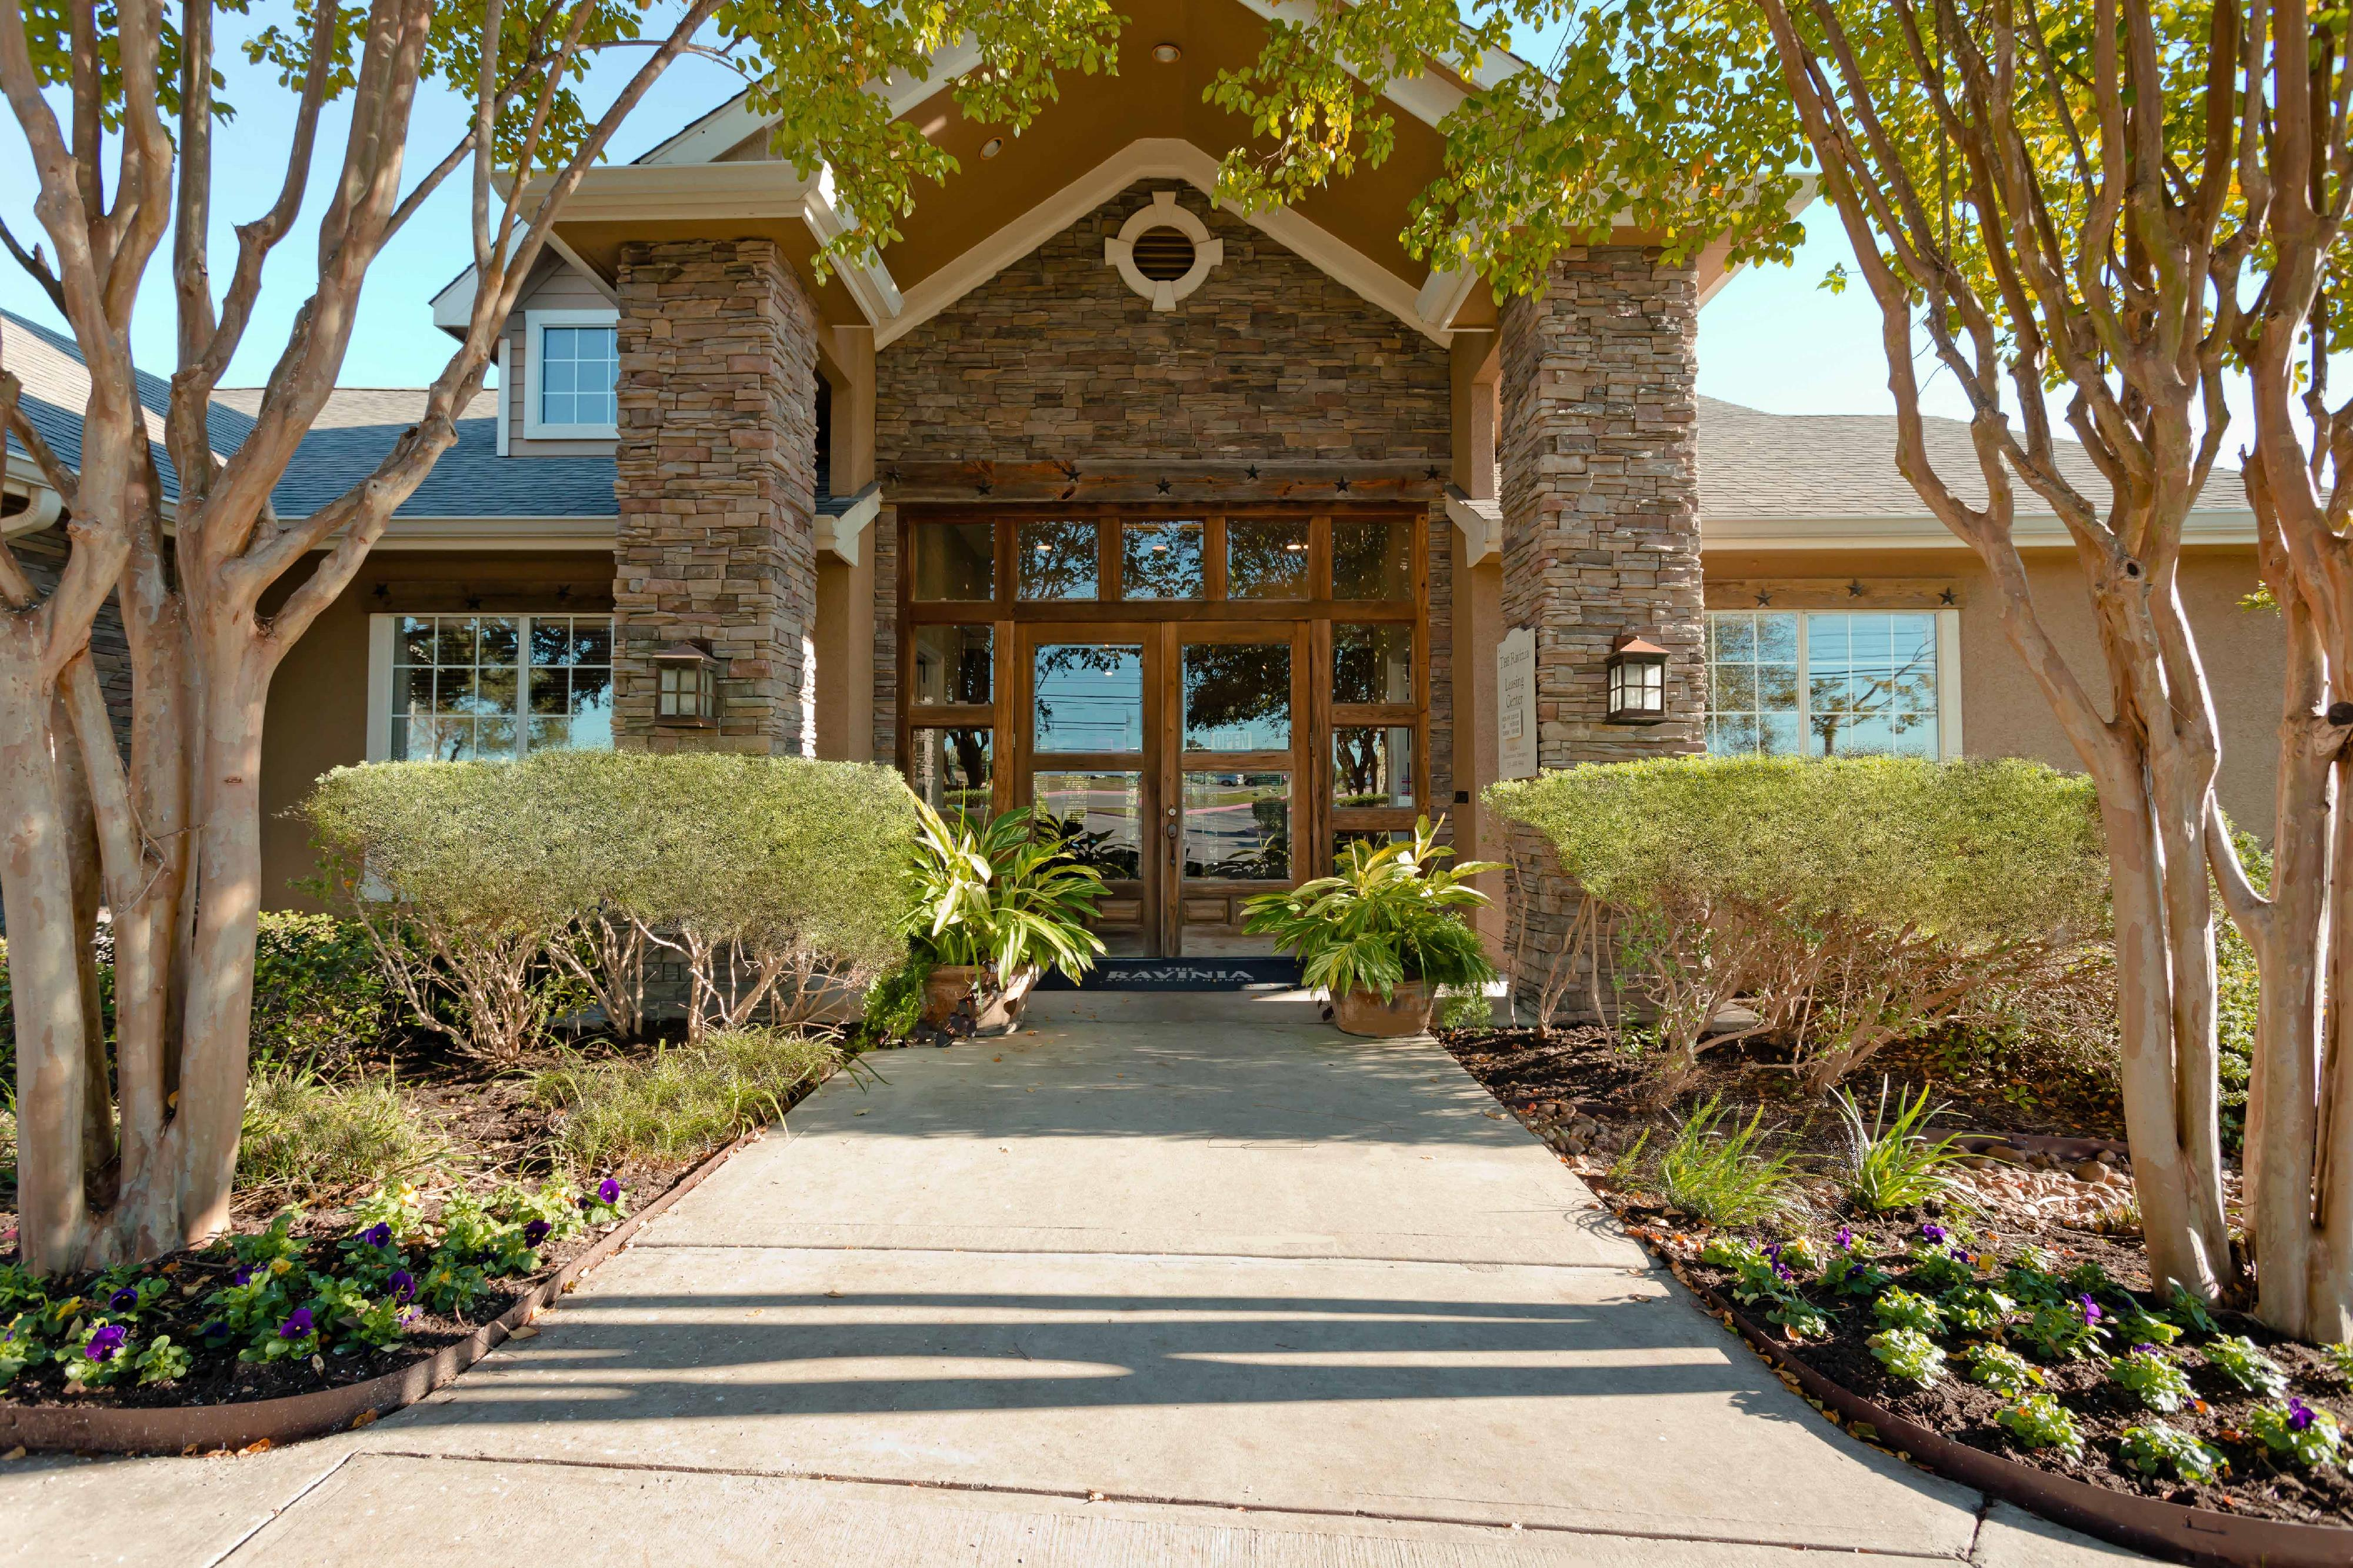 Apartments and houses for rent near me in stone oak tx for Stone house apartment san antonio